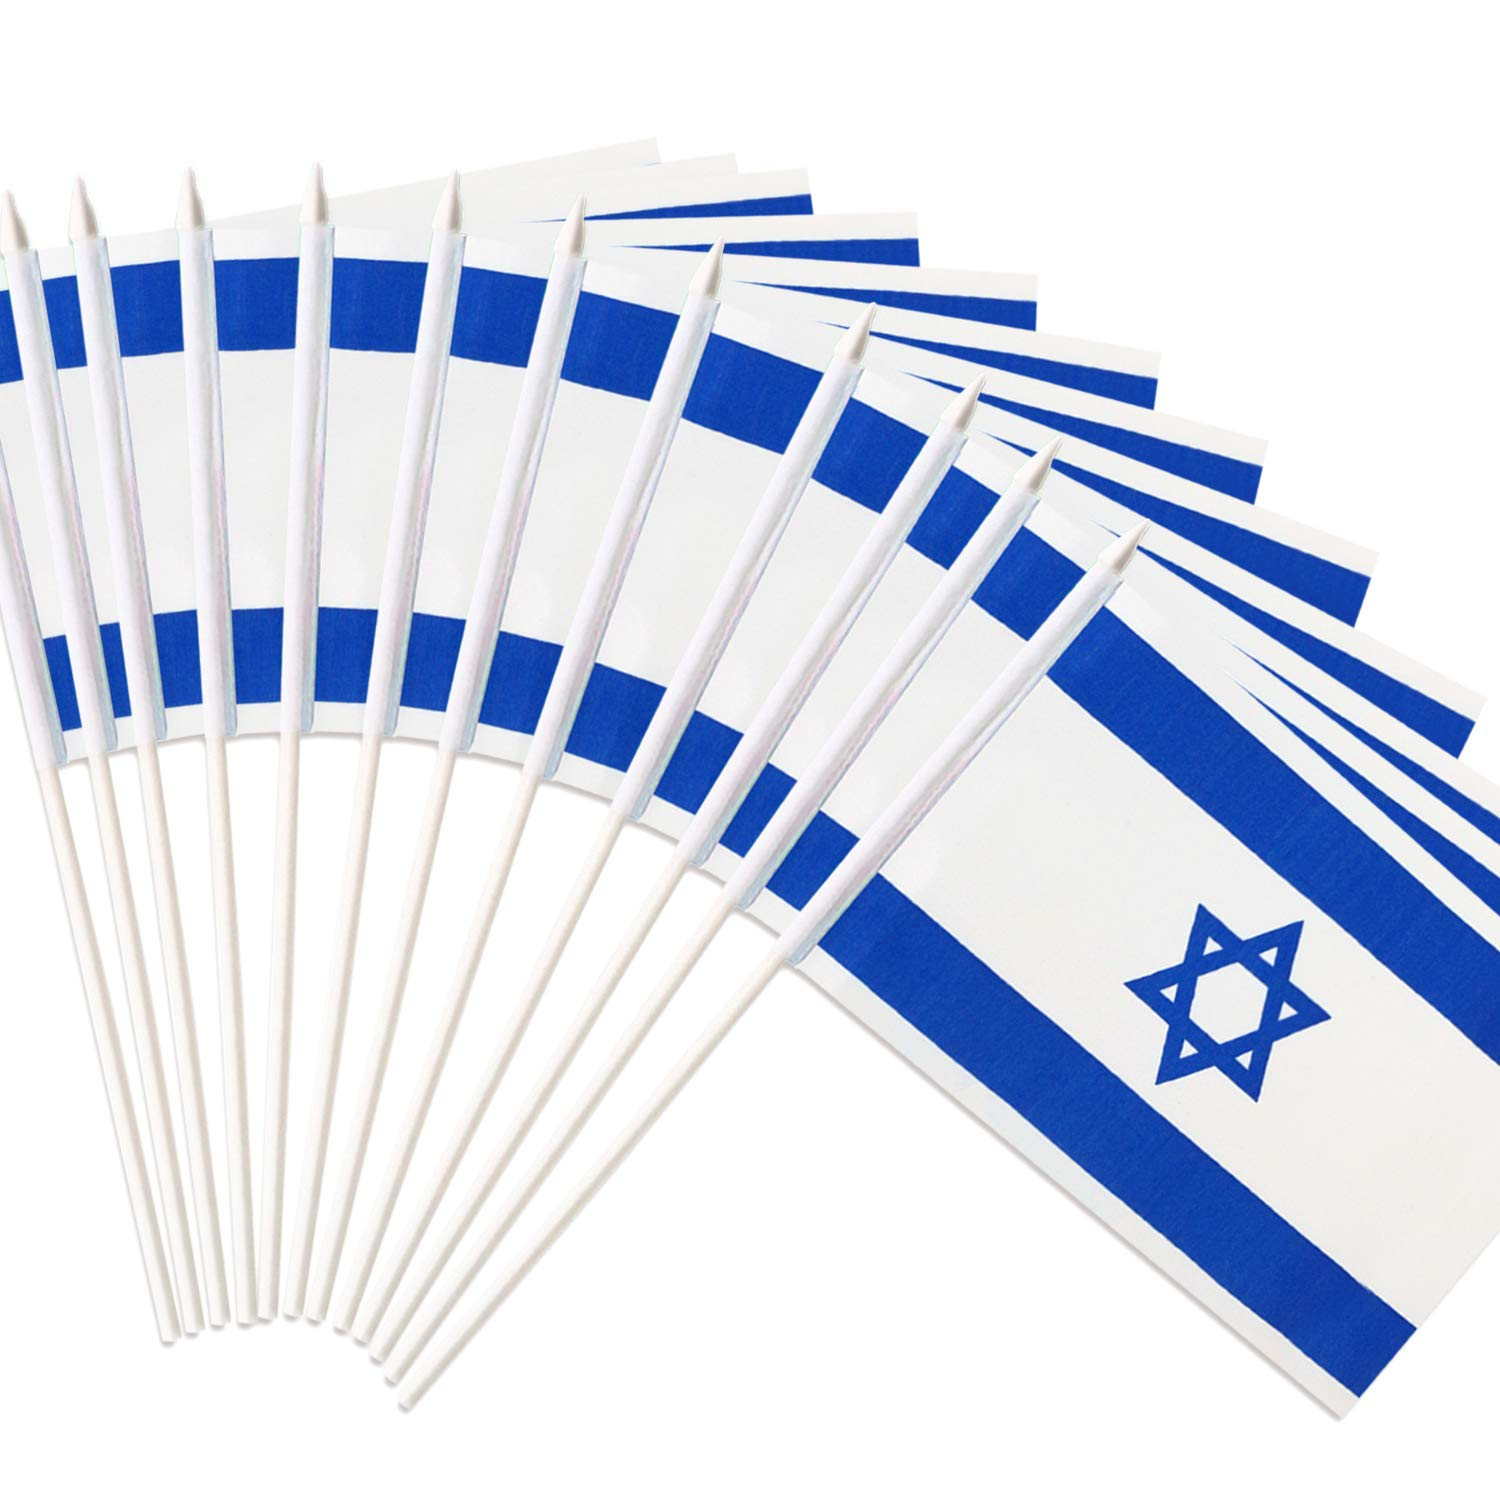 """Anley Israel Stick Flag, Israeli 5x8 inch Handheld Mini Flag with 12"""" White Solid Pole - Vivid Color and Fade Resistant - 5 x 8 inch Hand Held Stick Flags with Spear Top (1 Dozen)"""